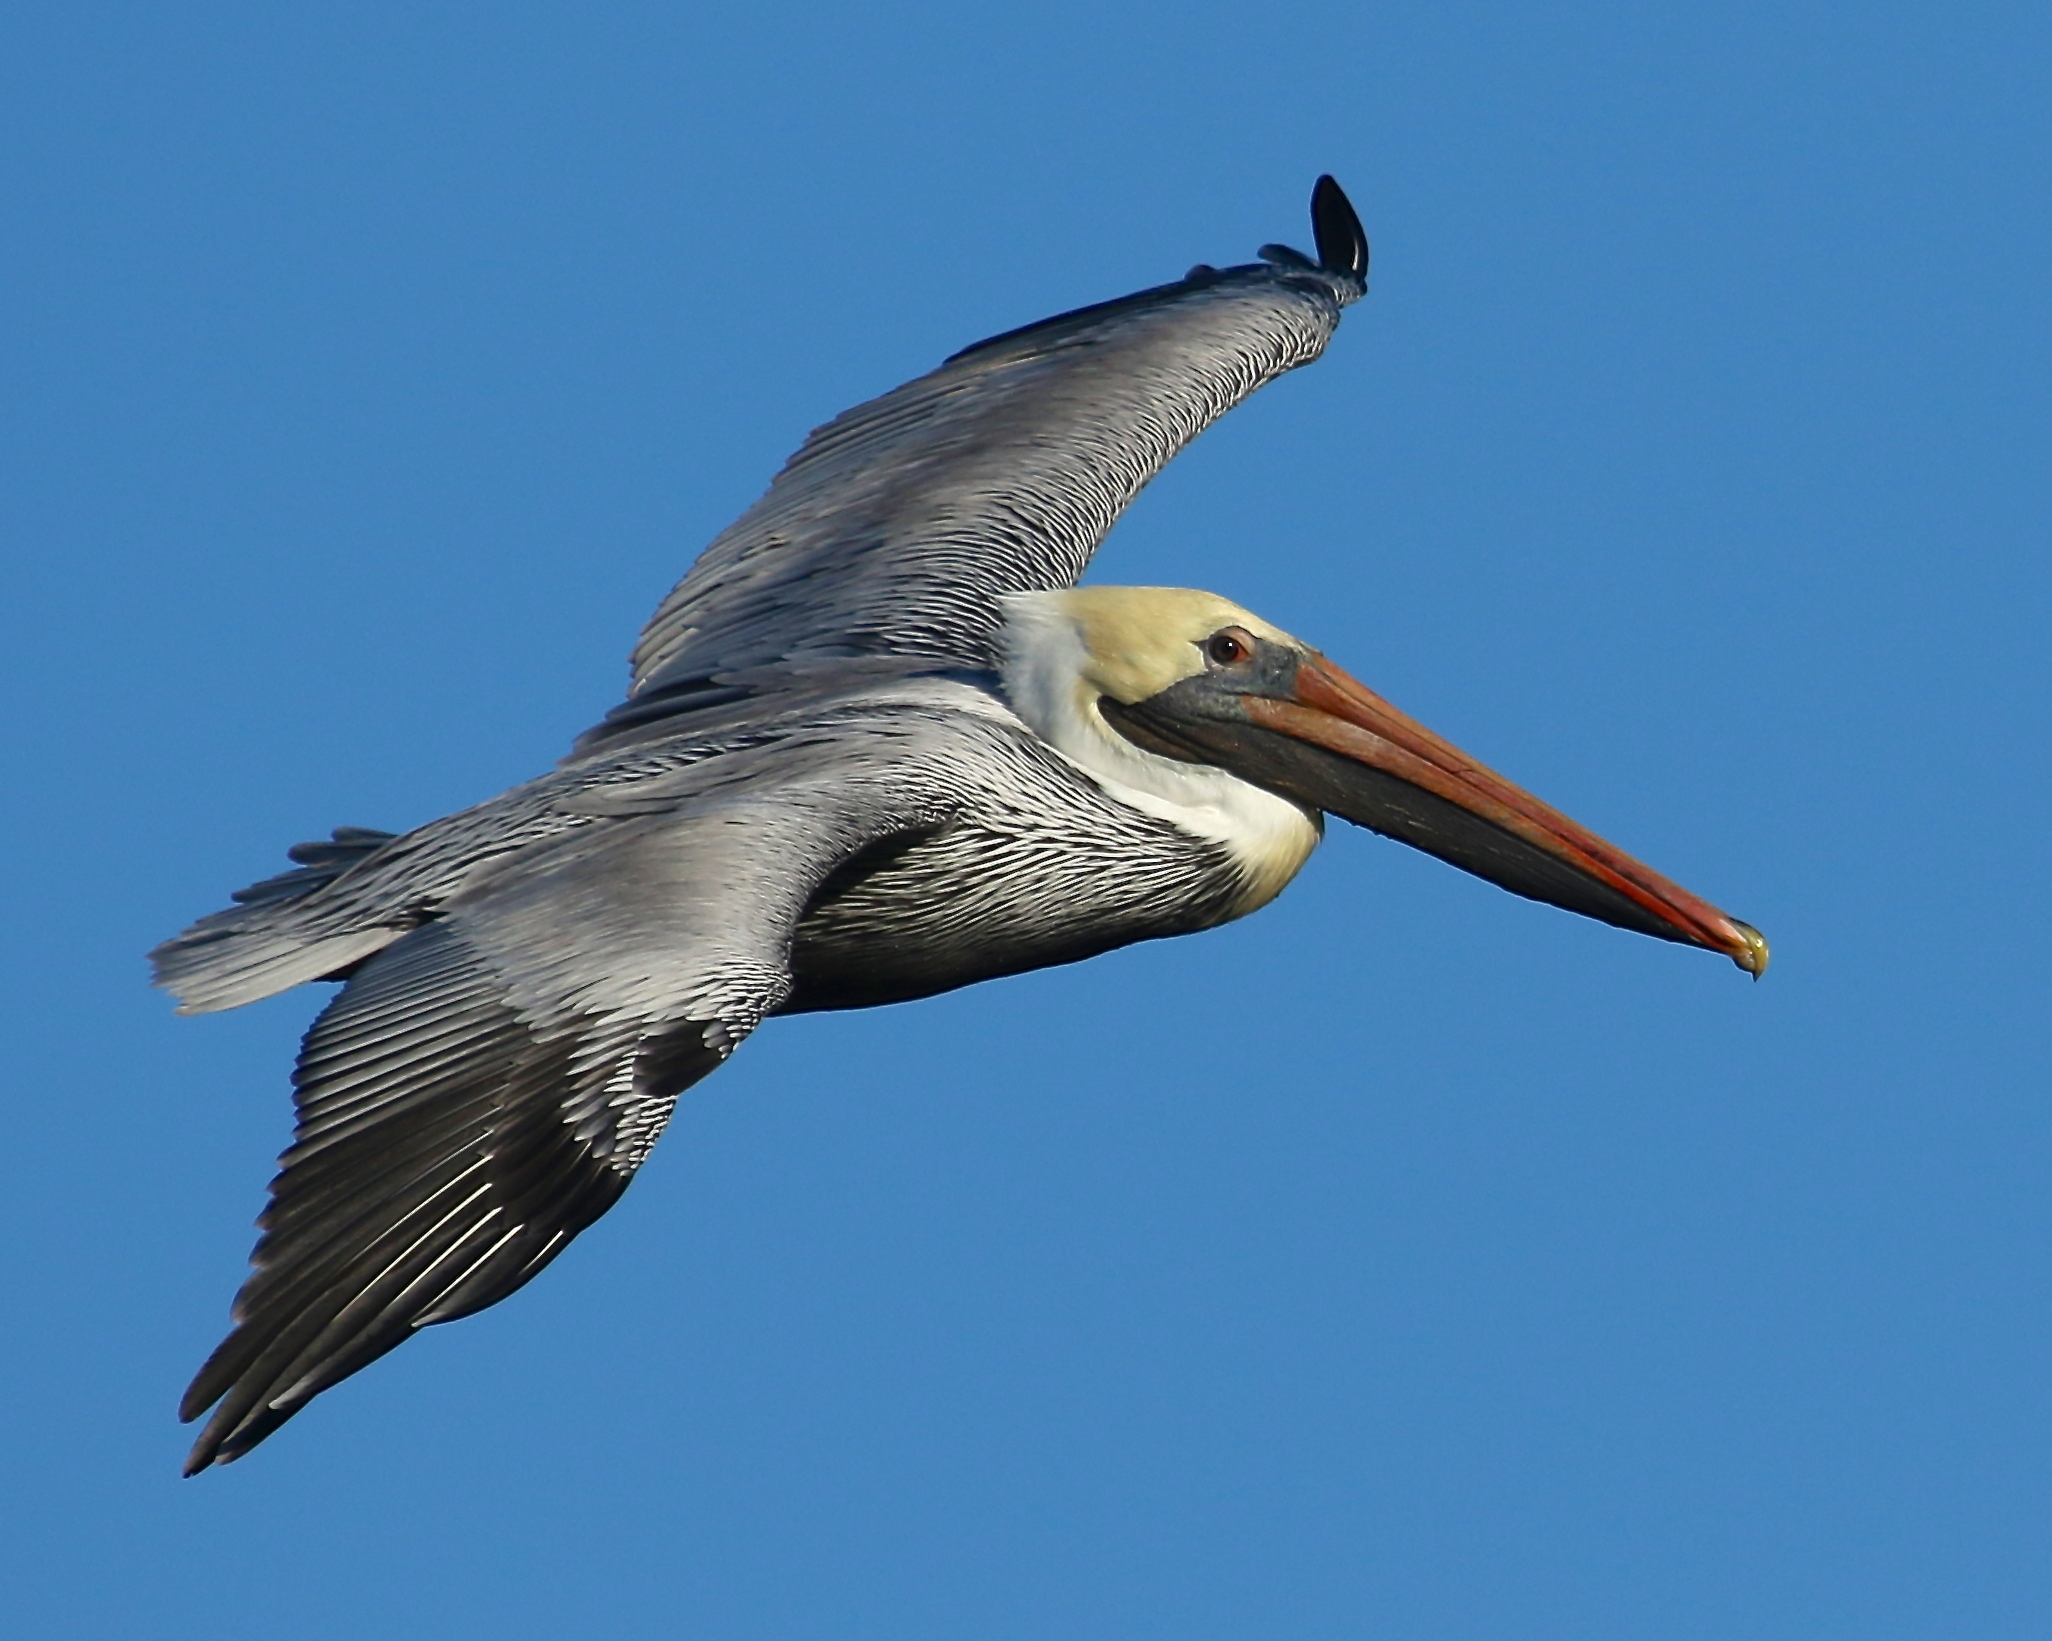 The Brown Pelican was back on the Broward in January following my friend Tommy's crab fishing boat.